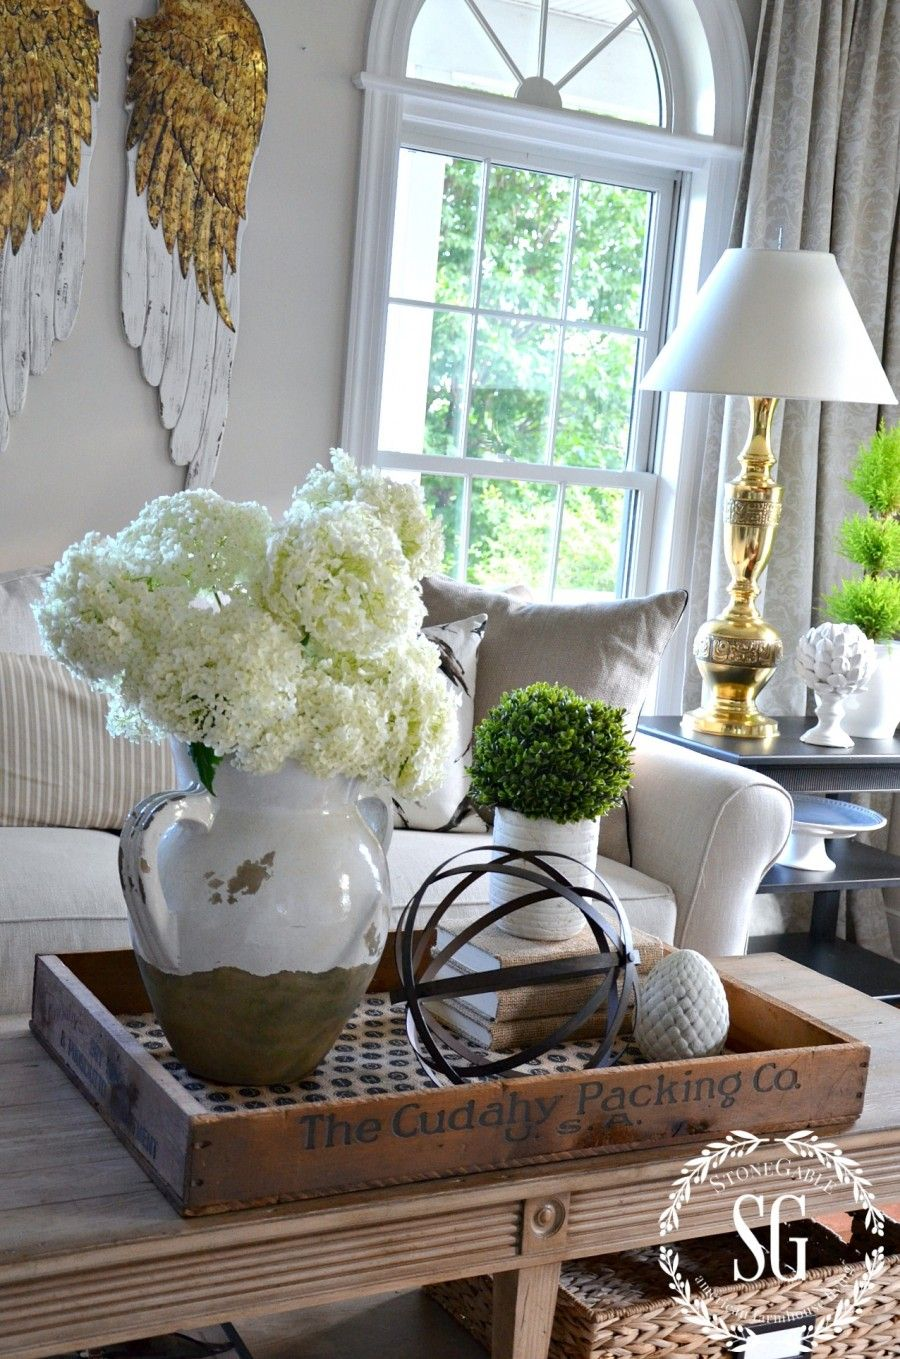 I Love The Idea Of Putting Coffee Table Decor On A Wooden Tray Looks Great And Makes It Easy To Move Out Way When Needed